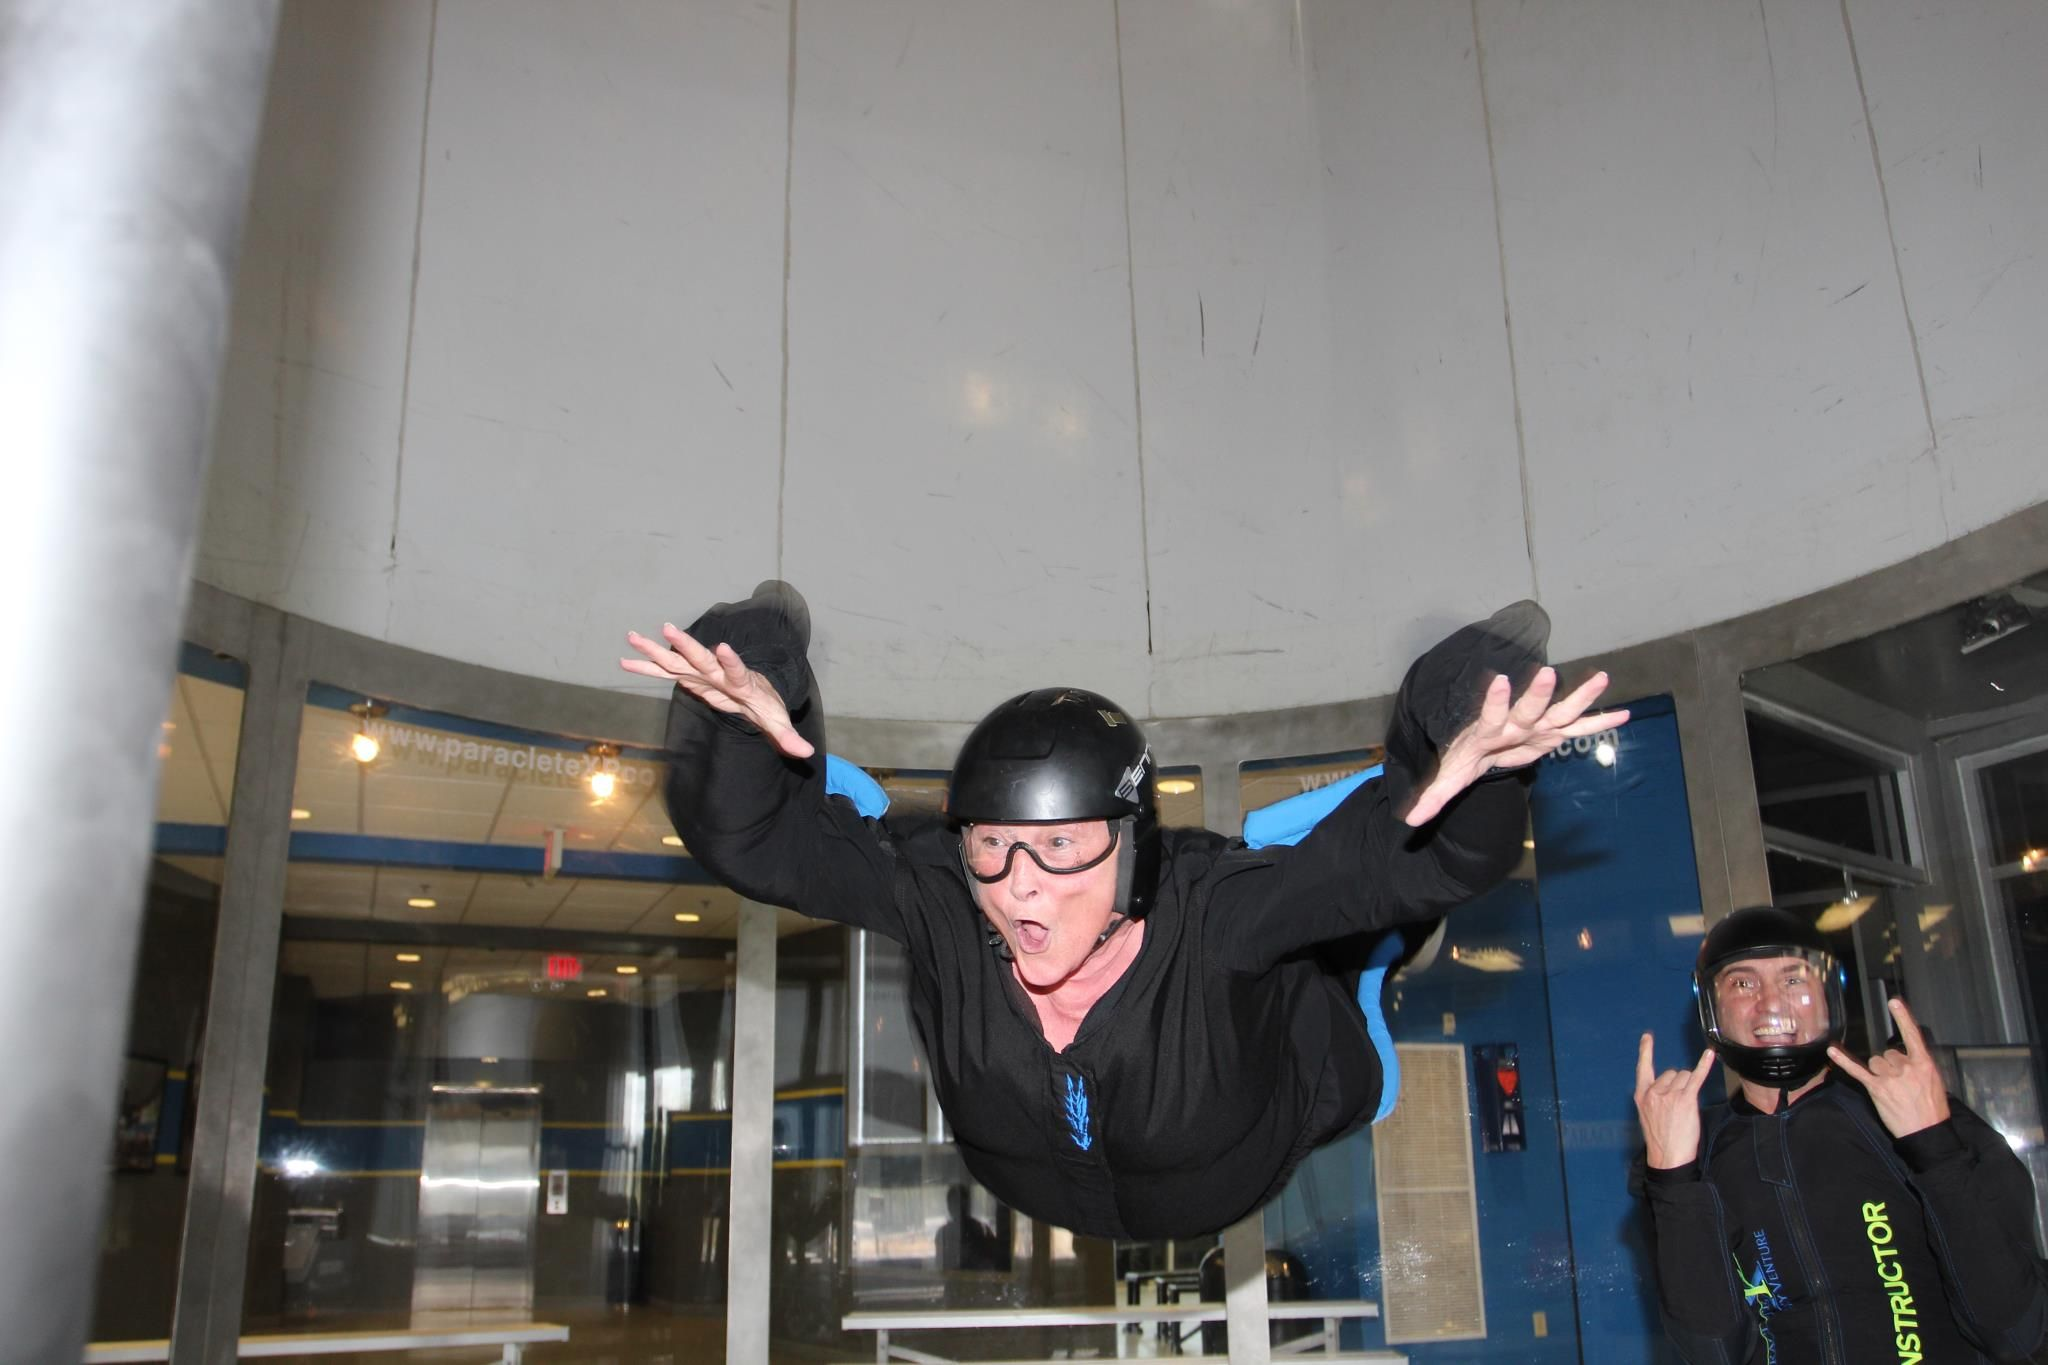 Indoor skydiving paraclete xp fayetteville nc it was so